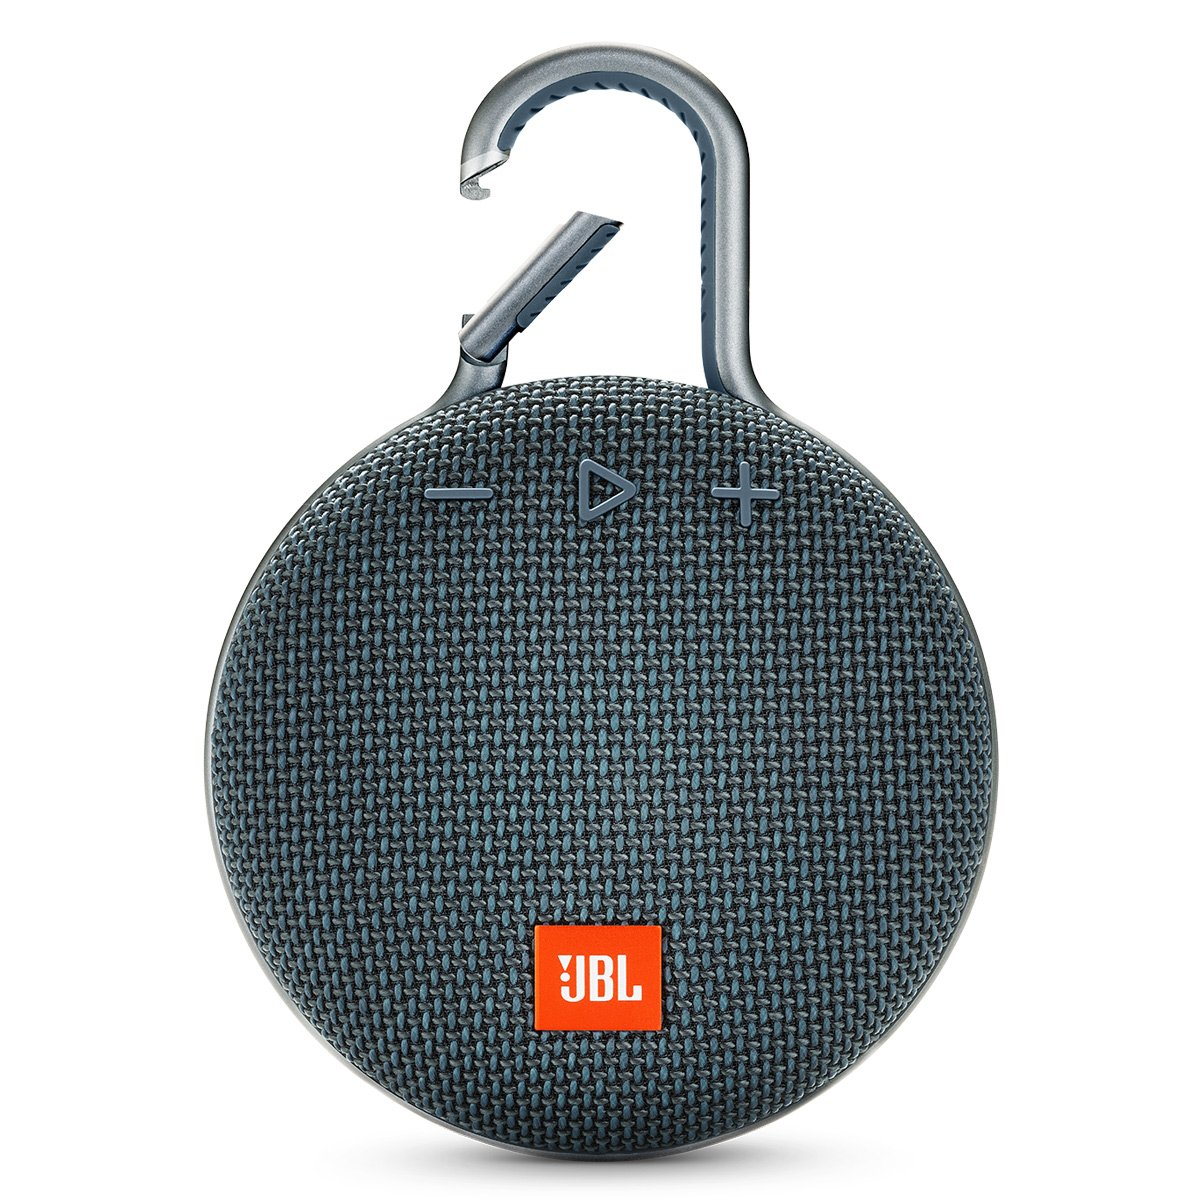 jbl clip 3 bluetooth speaker black friday and cyber monday deals